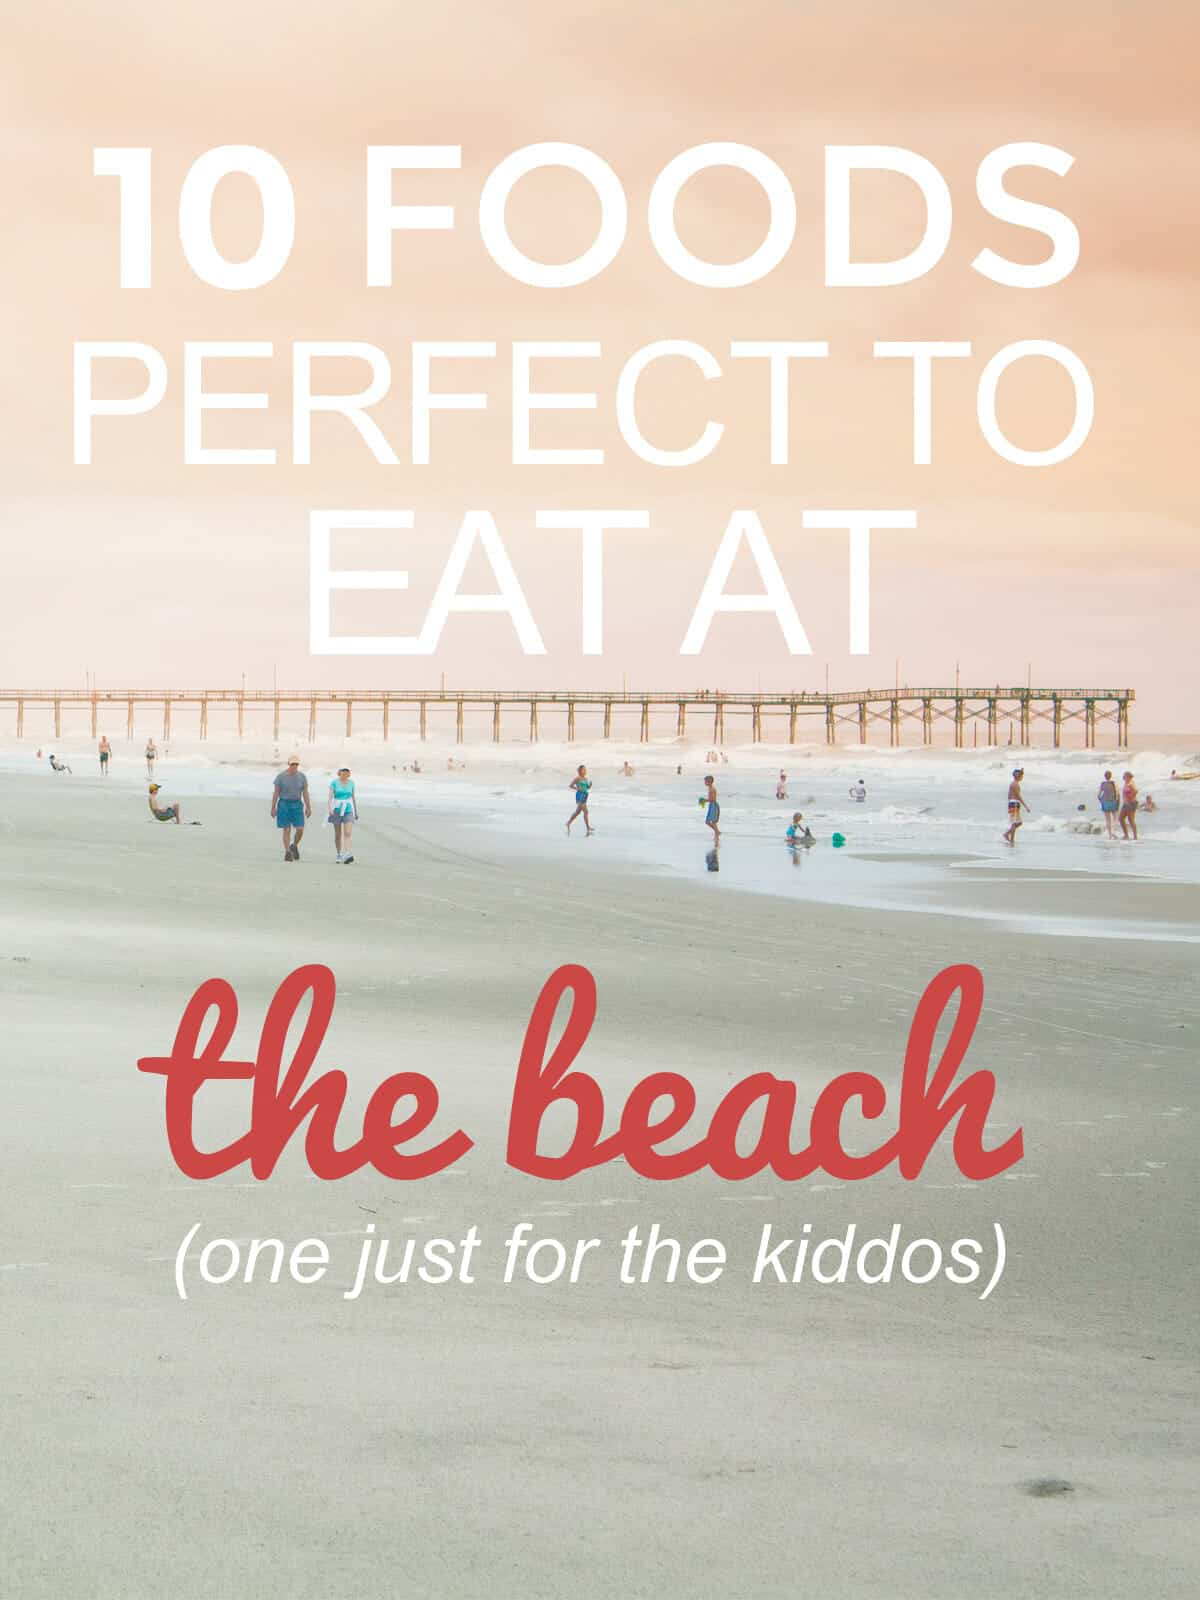 Ten Foods that are Perfect to Eat at the Beach: Here's a line up of all the things I look forward to eating at the beach during vacation! YUM! | macheesmo.com